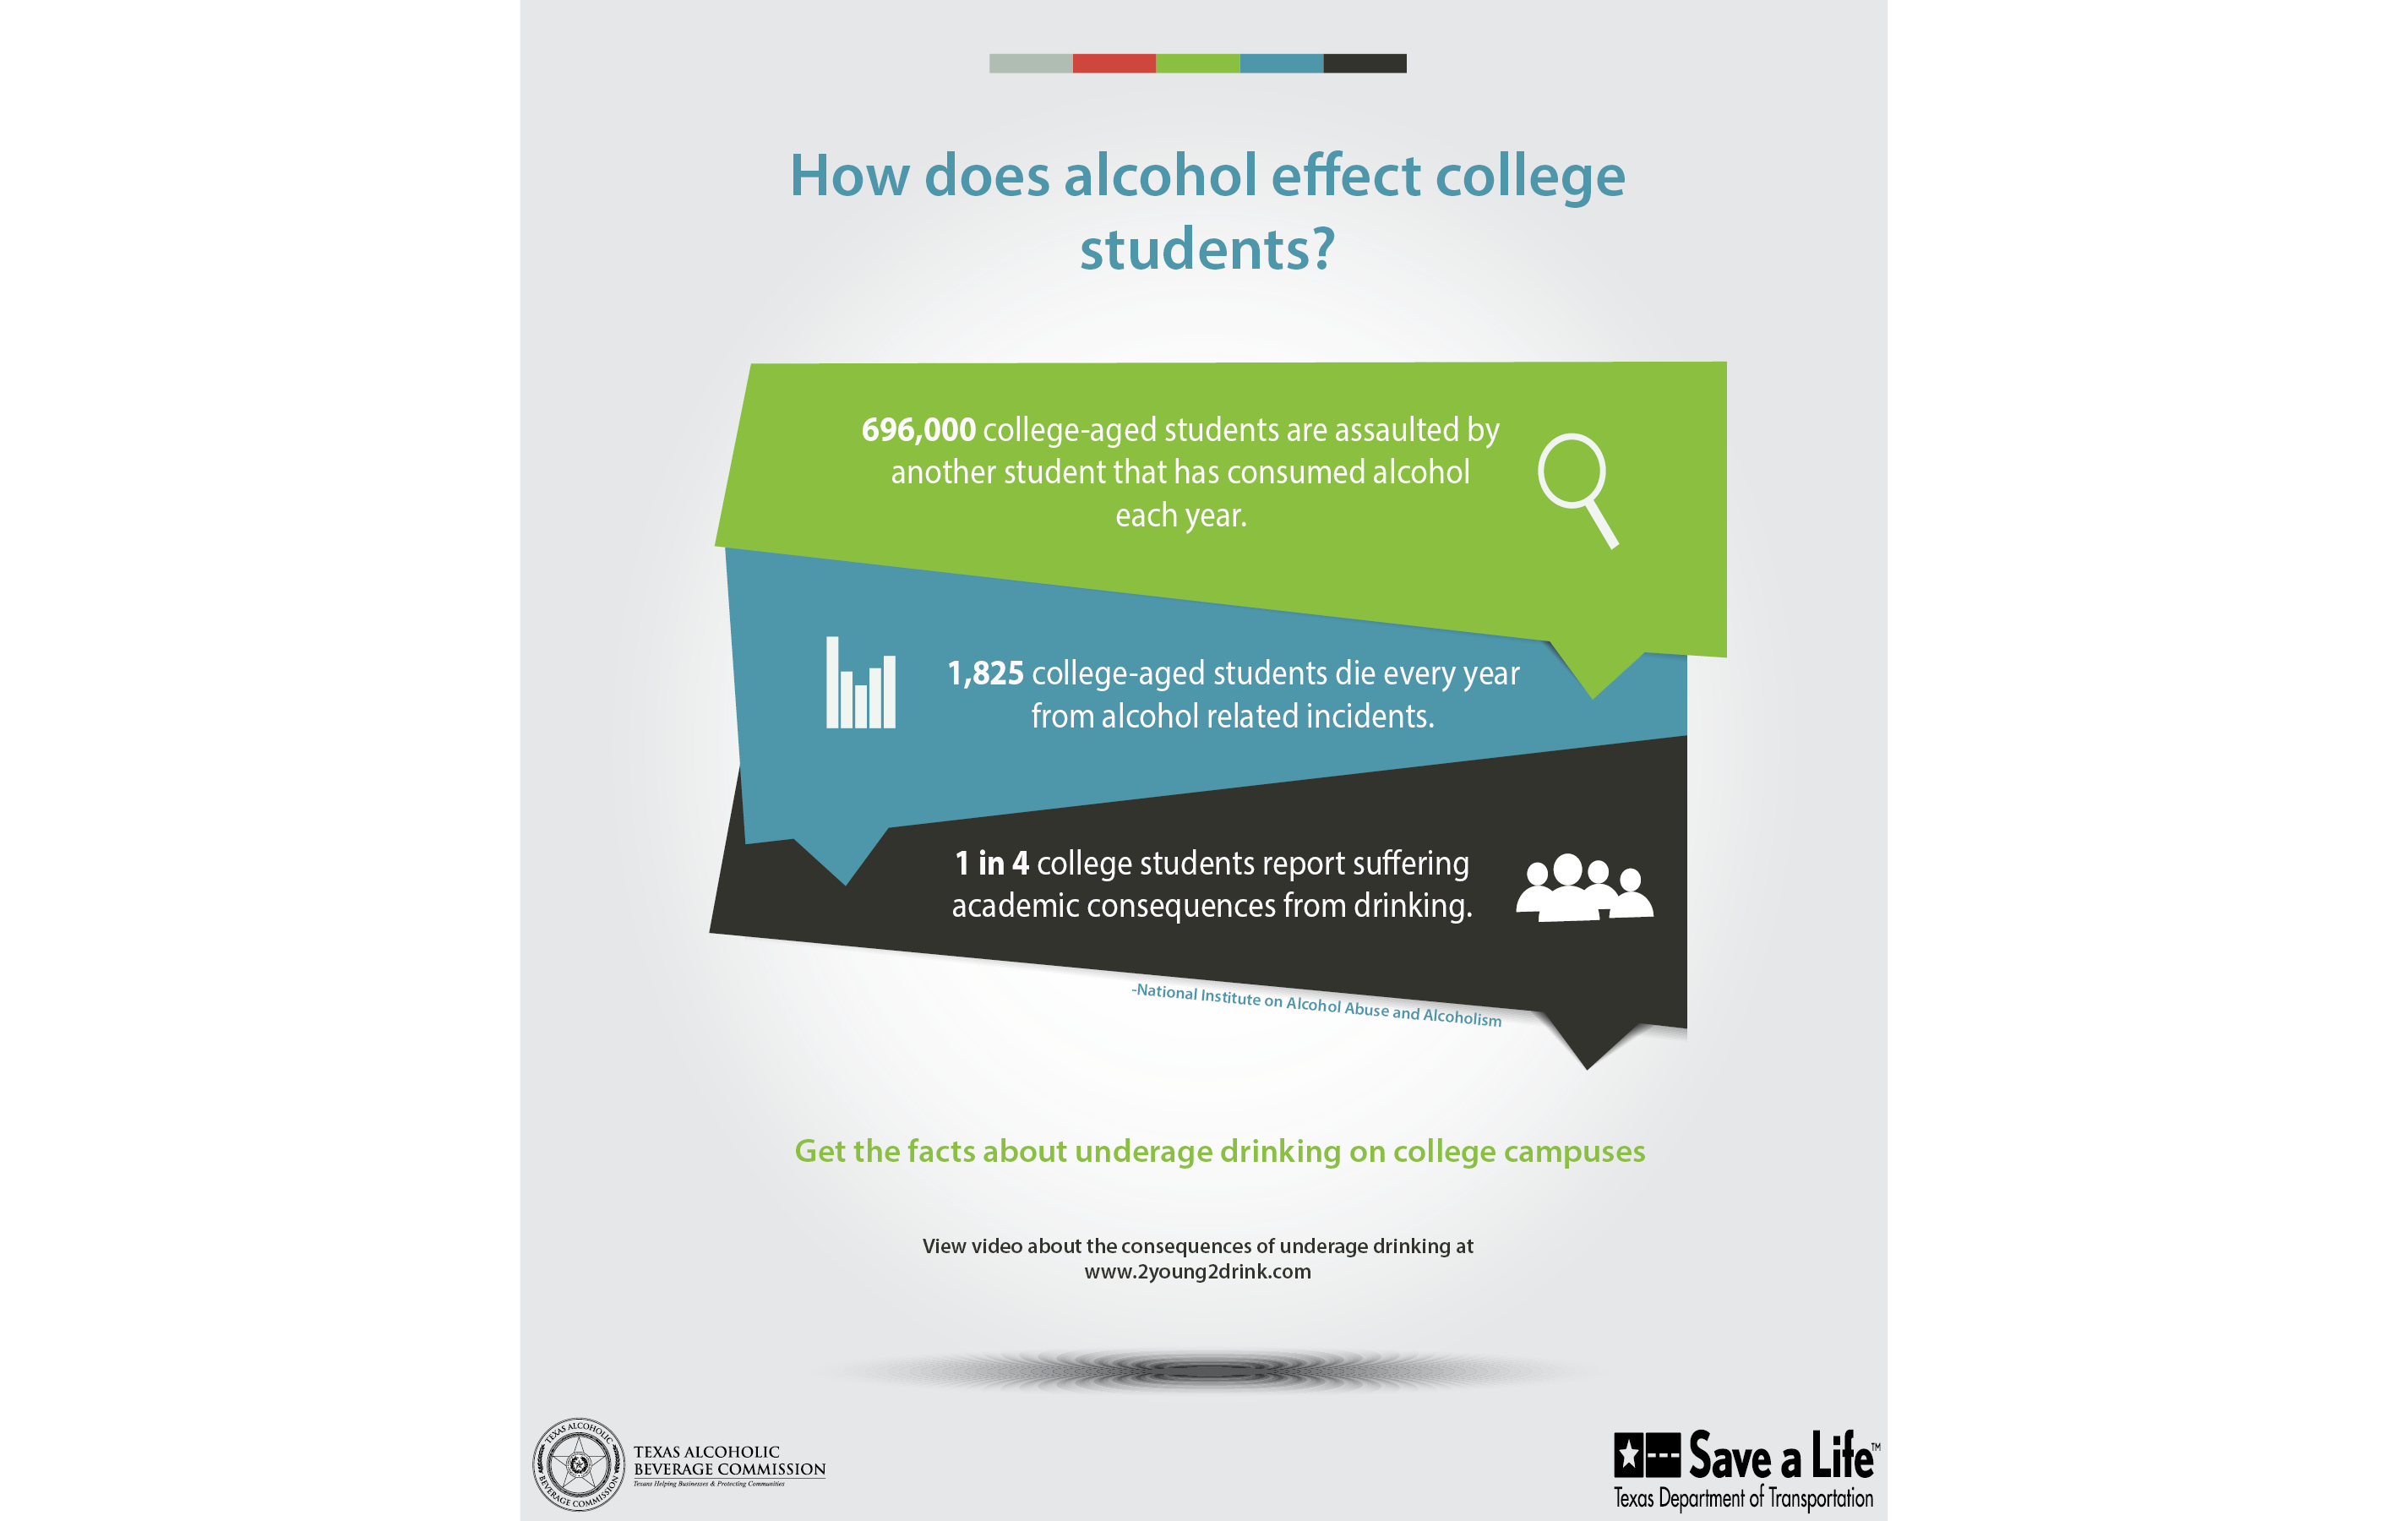 How Does Alcohol Effect College Flyer